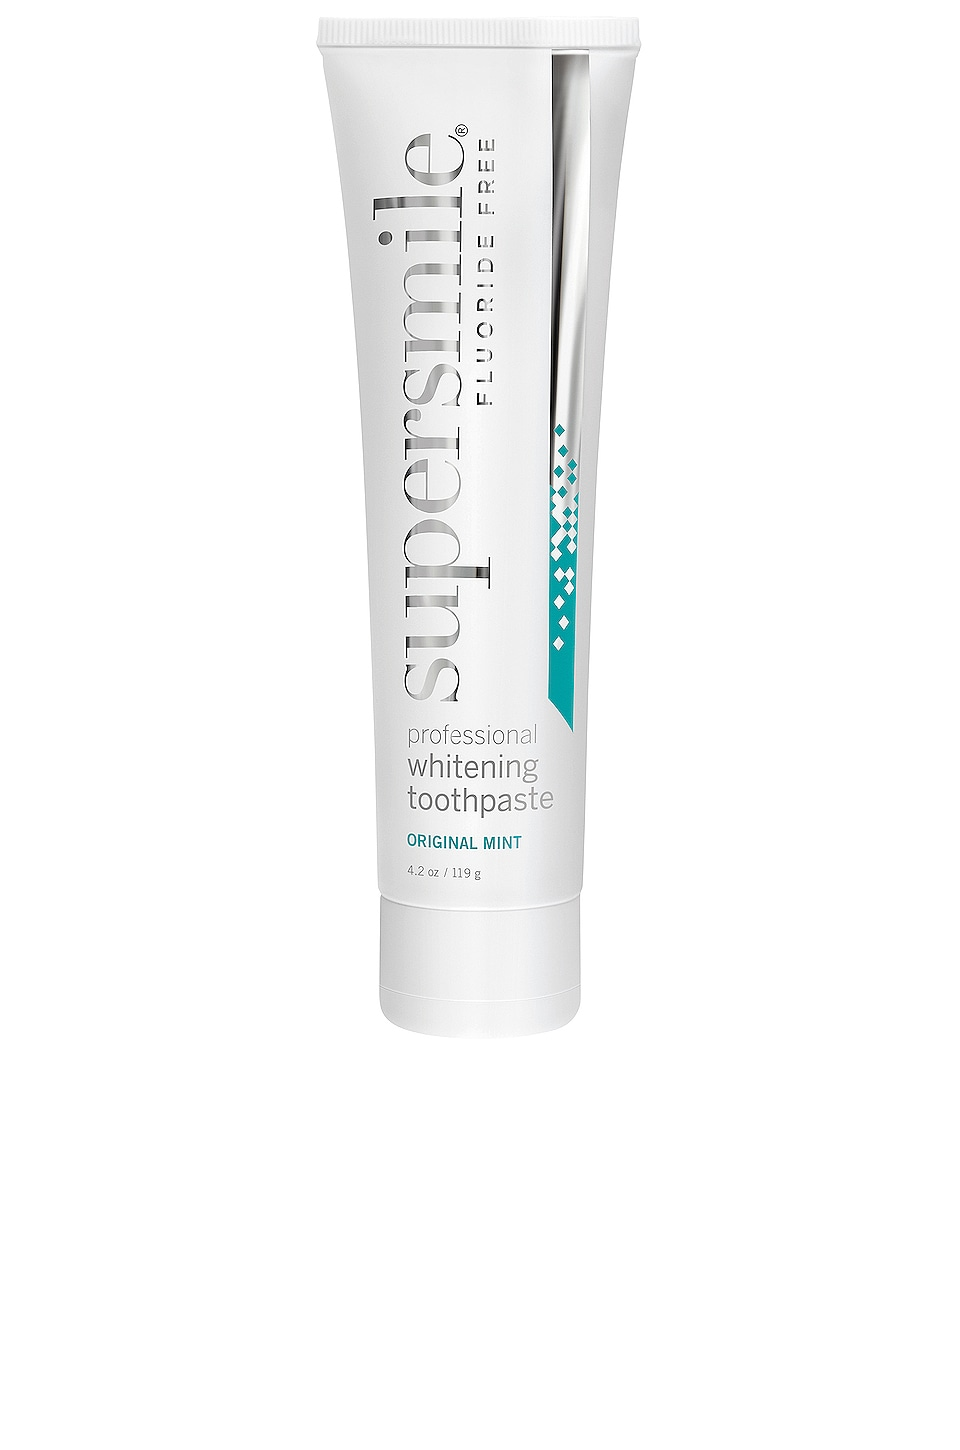 supersmile Fluoride Free Professional Whitening Toothpaste in Original Mint